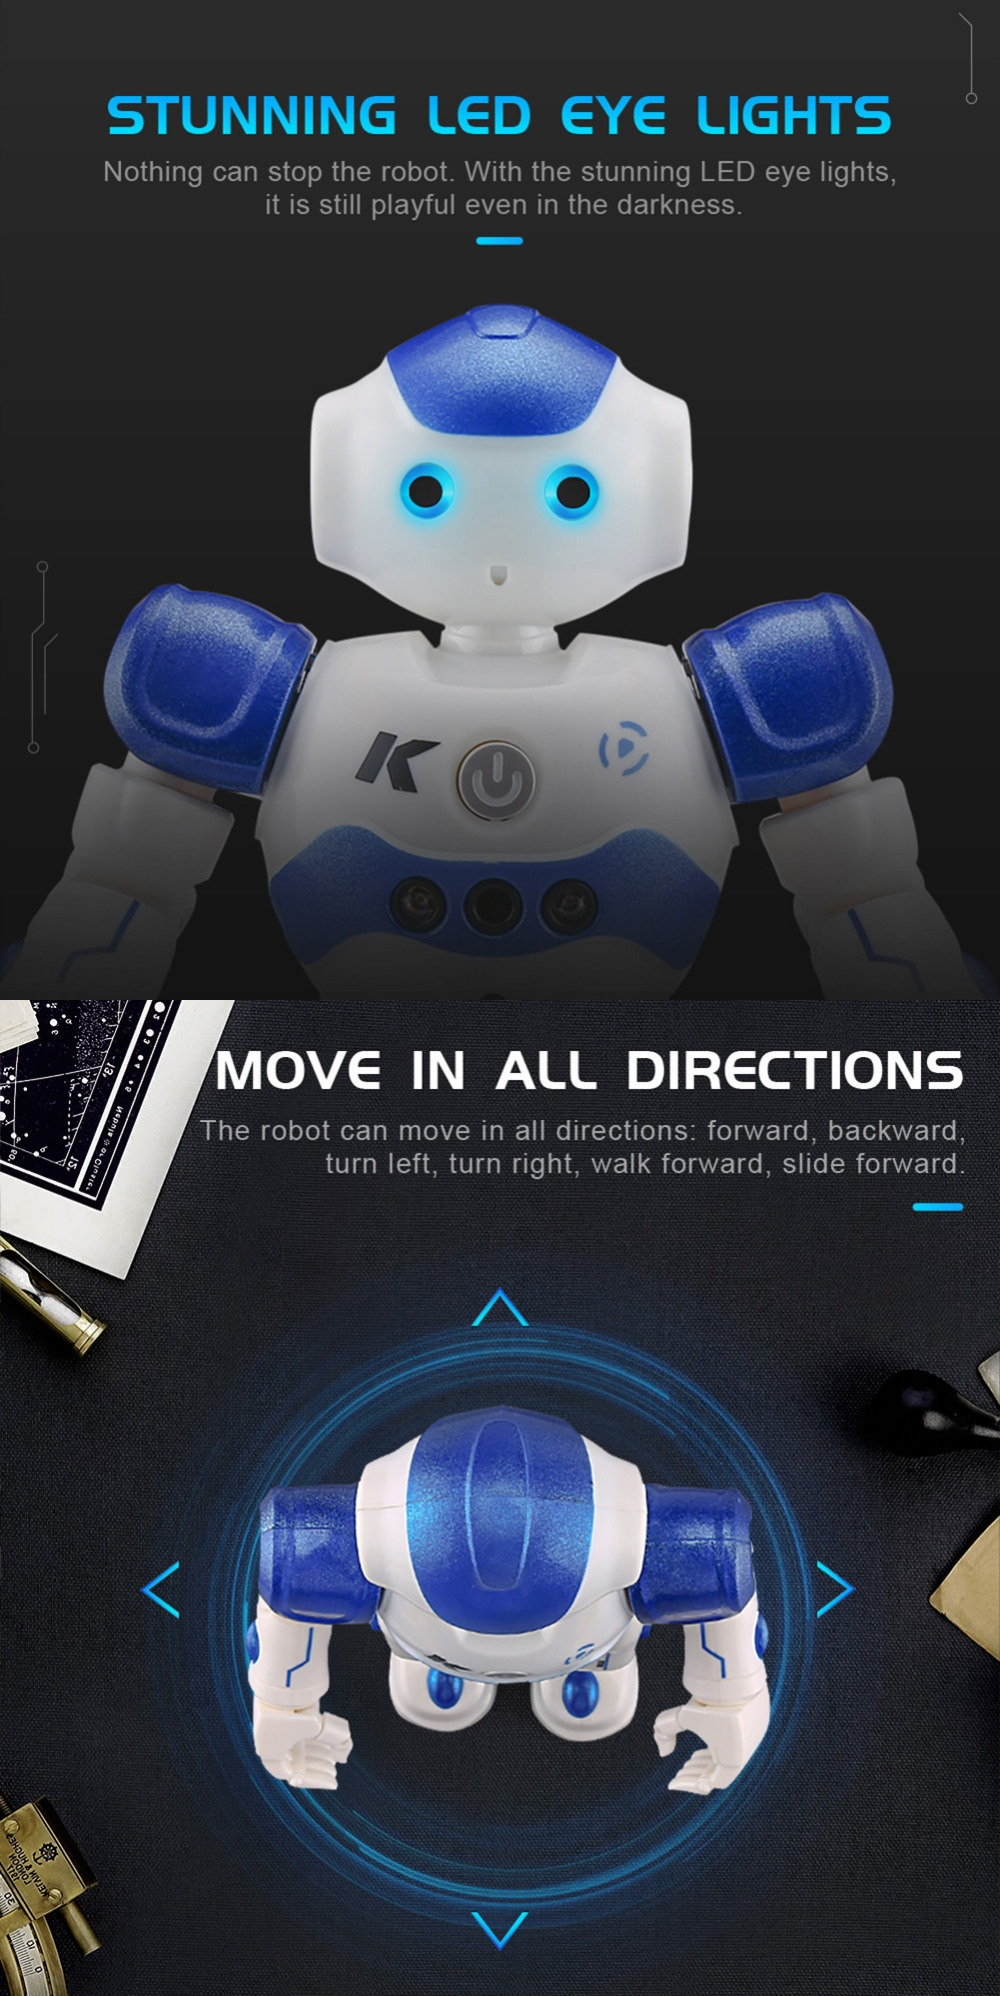 Hot sales Global Drone JJRC R2 smart robot with gesture sensor RC Robot toys for kids children Gift with usb charging cable.jpg